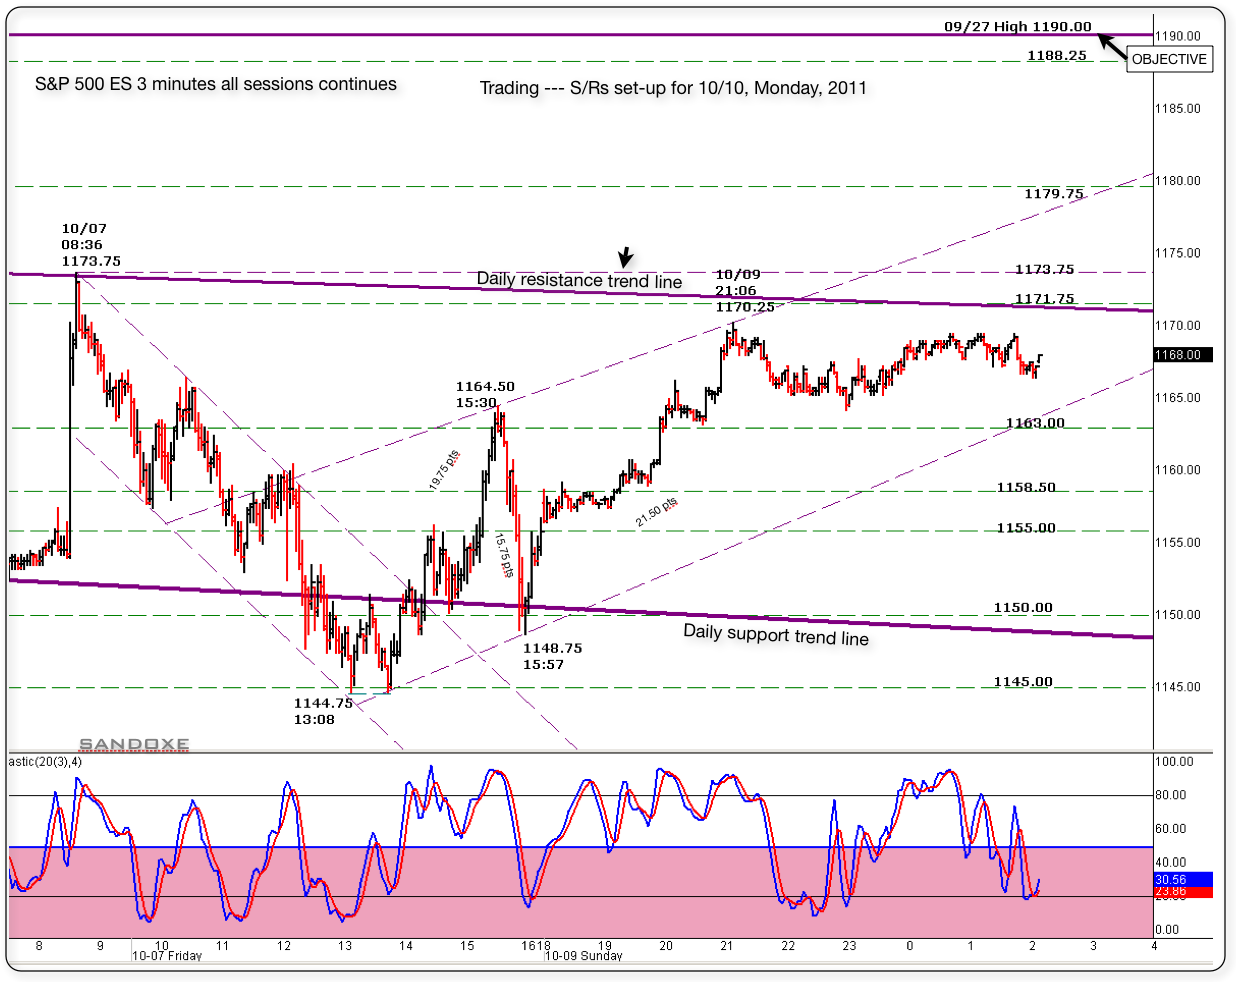 sp 500 es 3 minute chart 10102011 follow up from friday